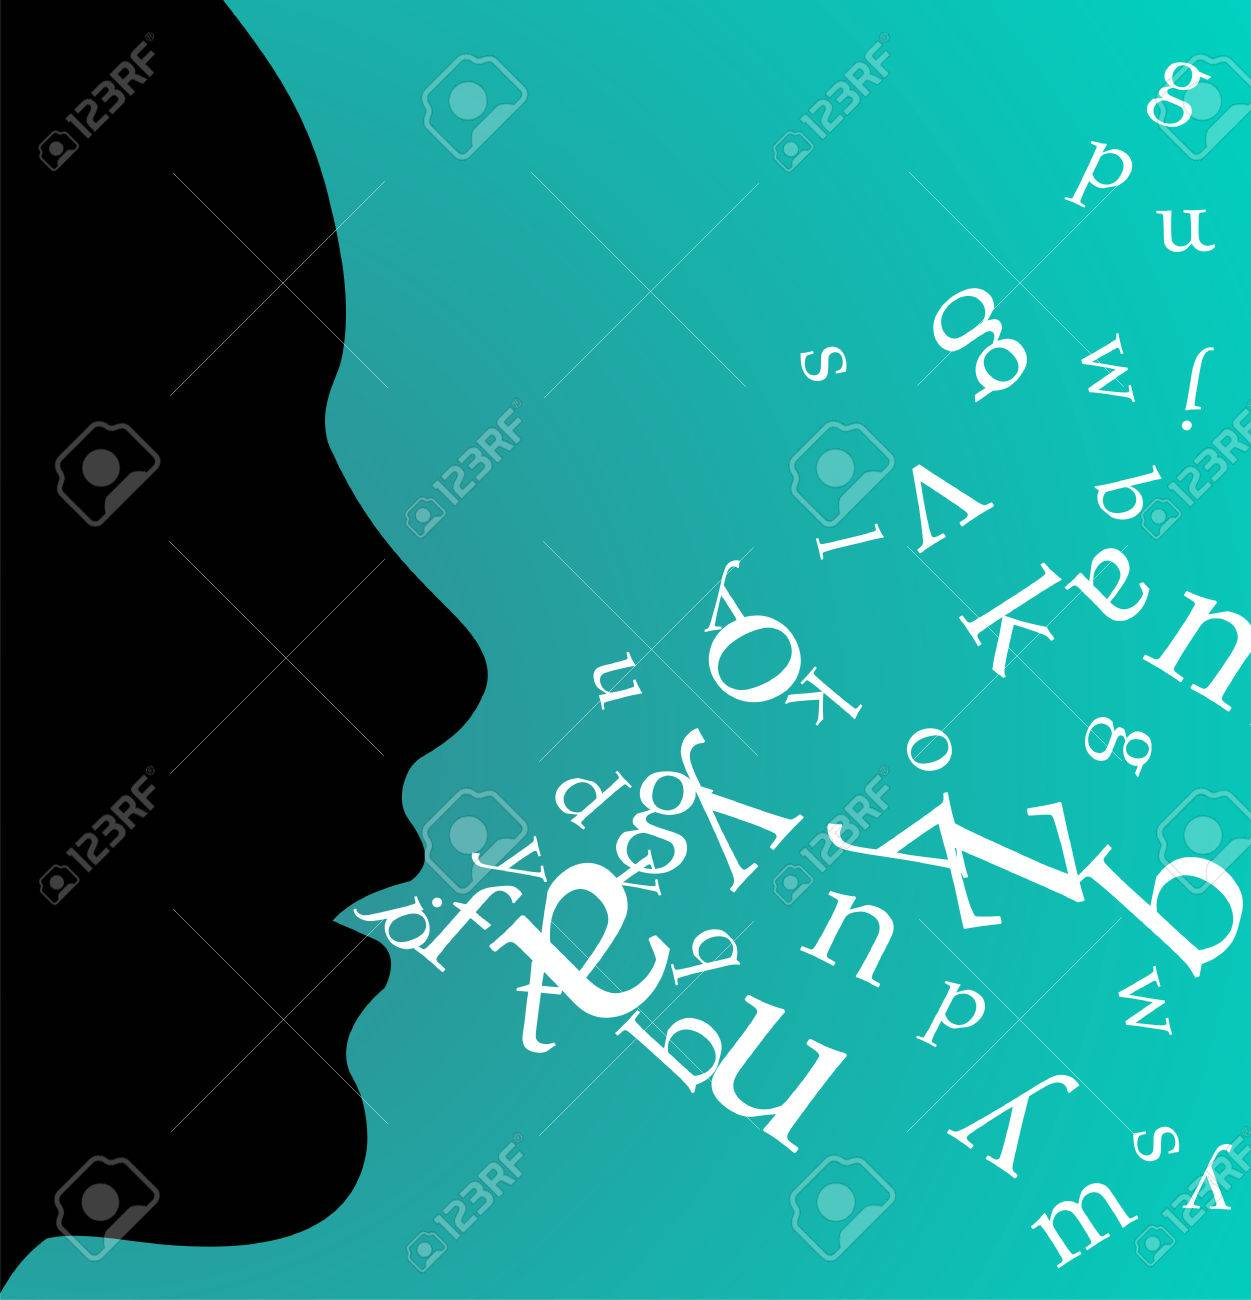 Female profile speaking and throwing letters from her mouth on green background. available. - 7097774